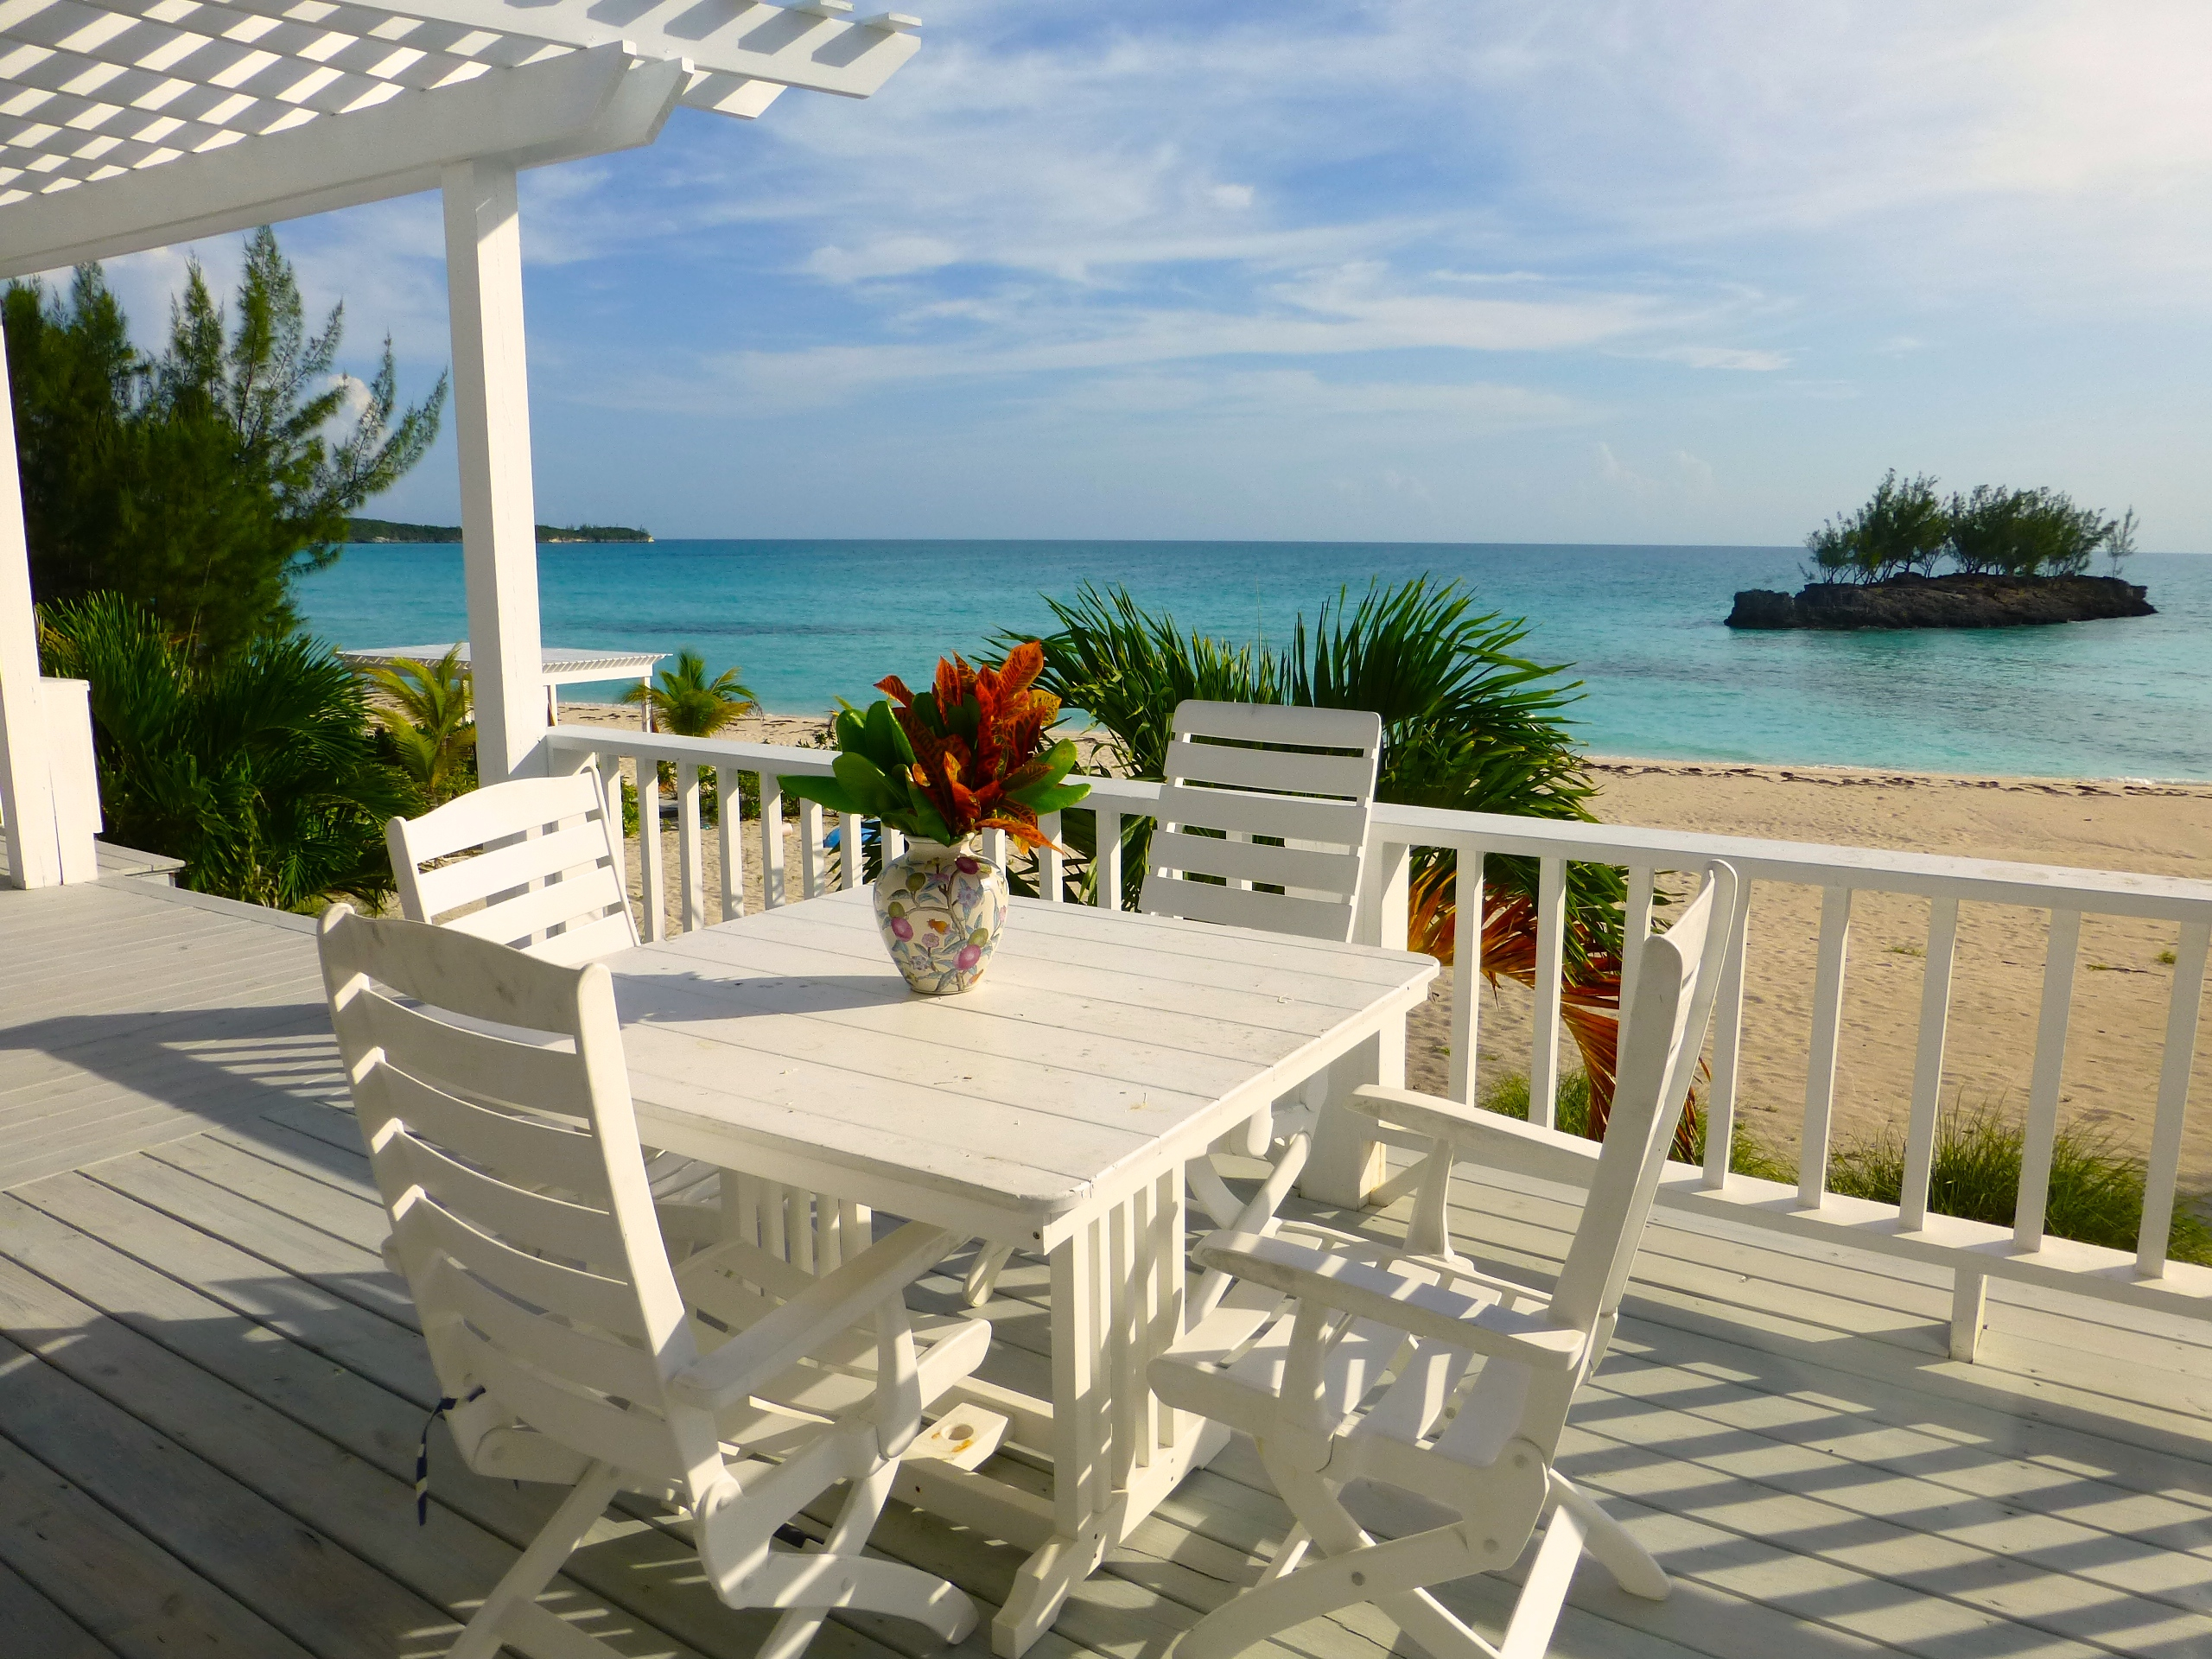 Maison unifamiliale pour l Vente à A Beach House for an Incomparable Island Lifestyle. Gregory Town, Eleuthera, Bahamas